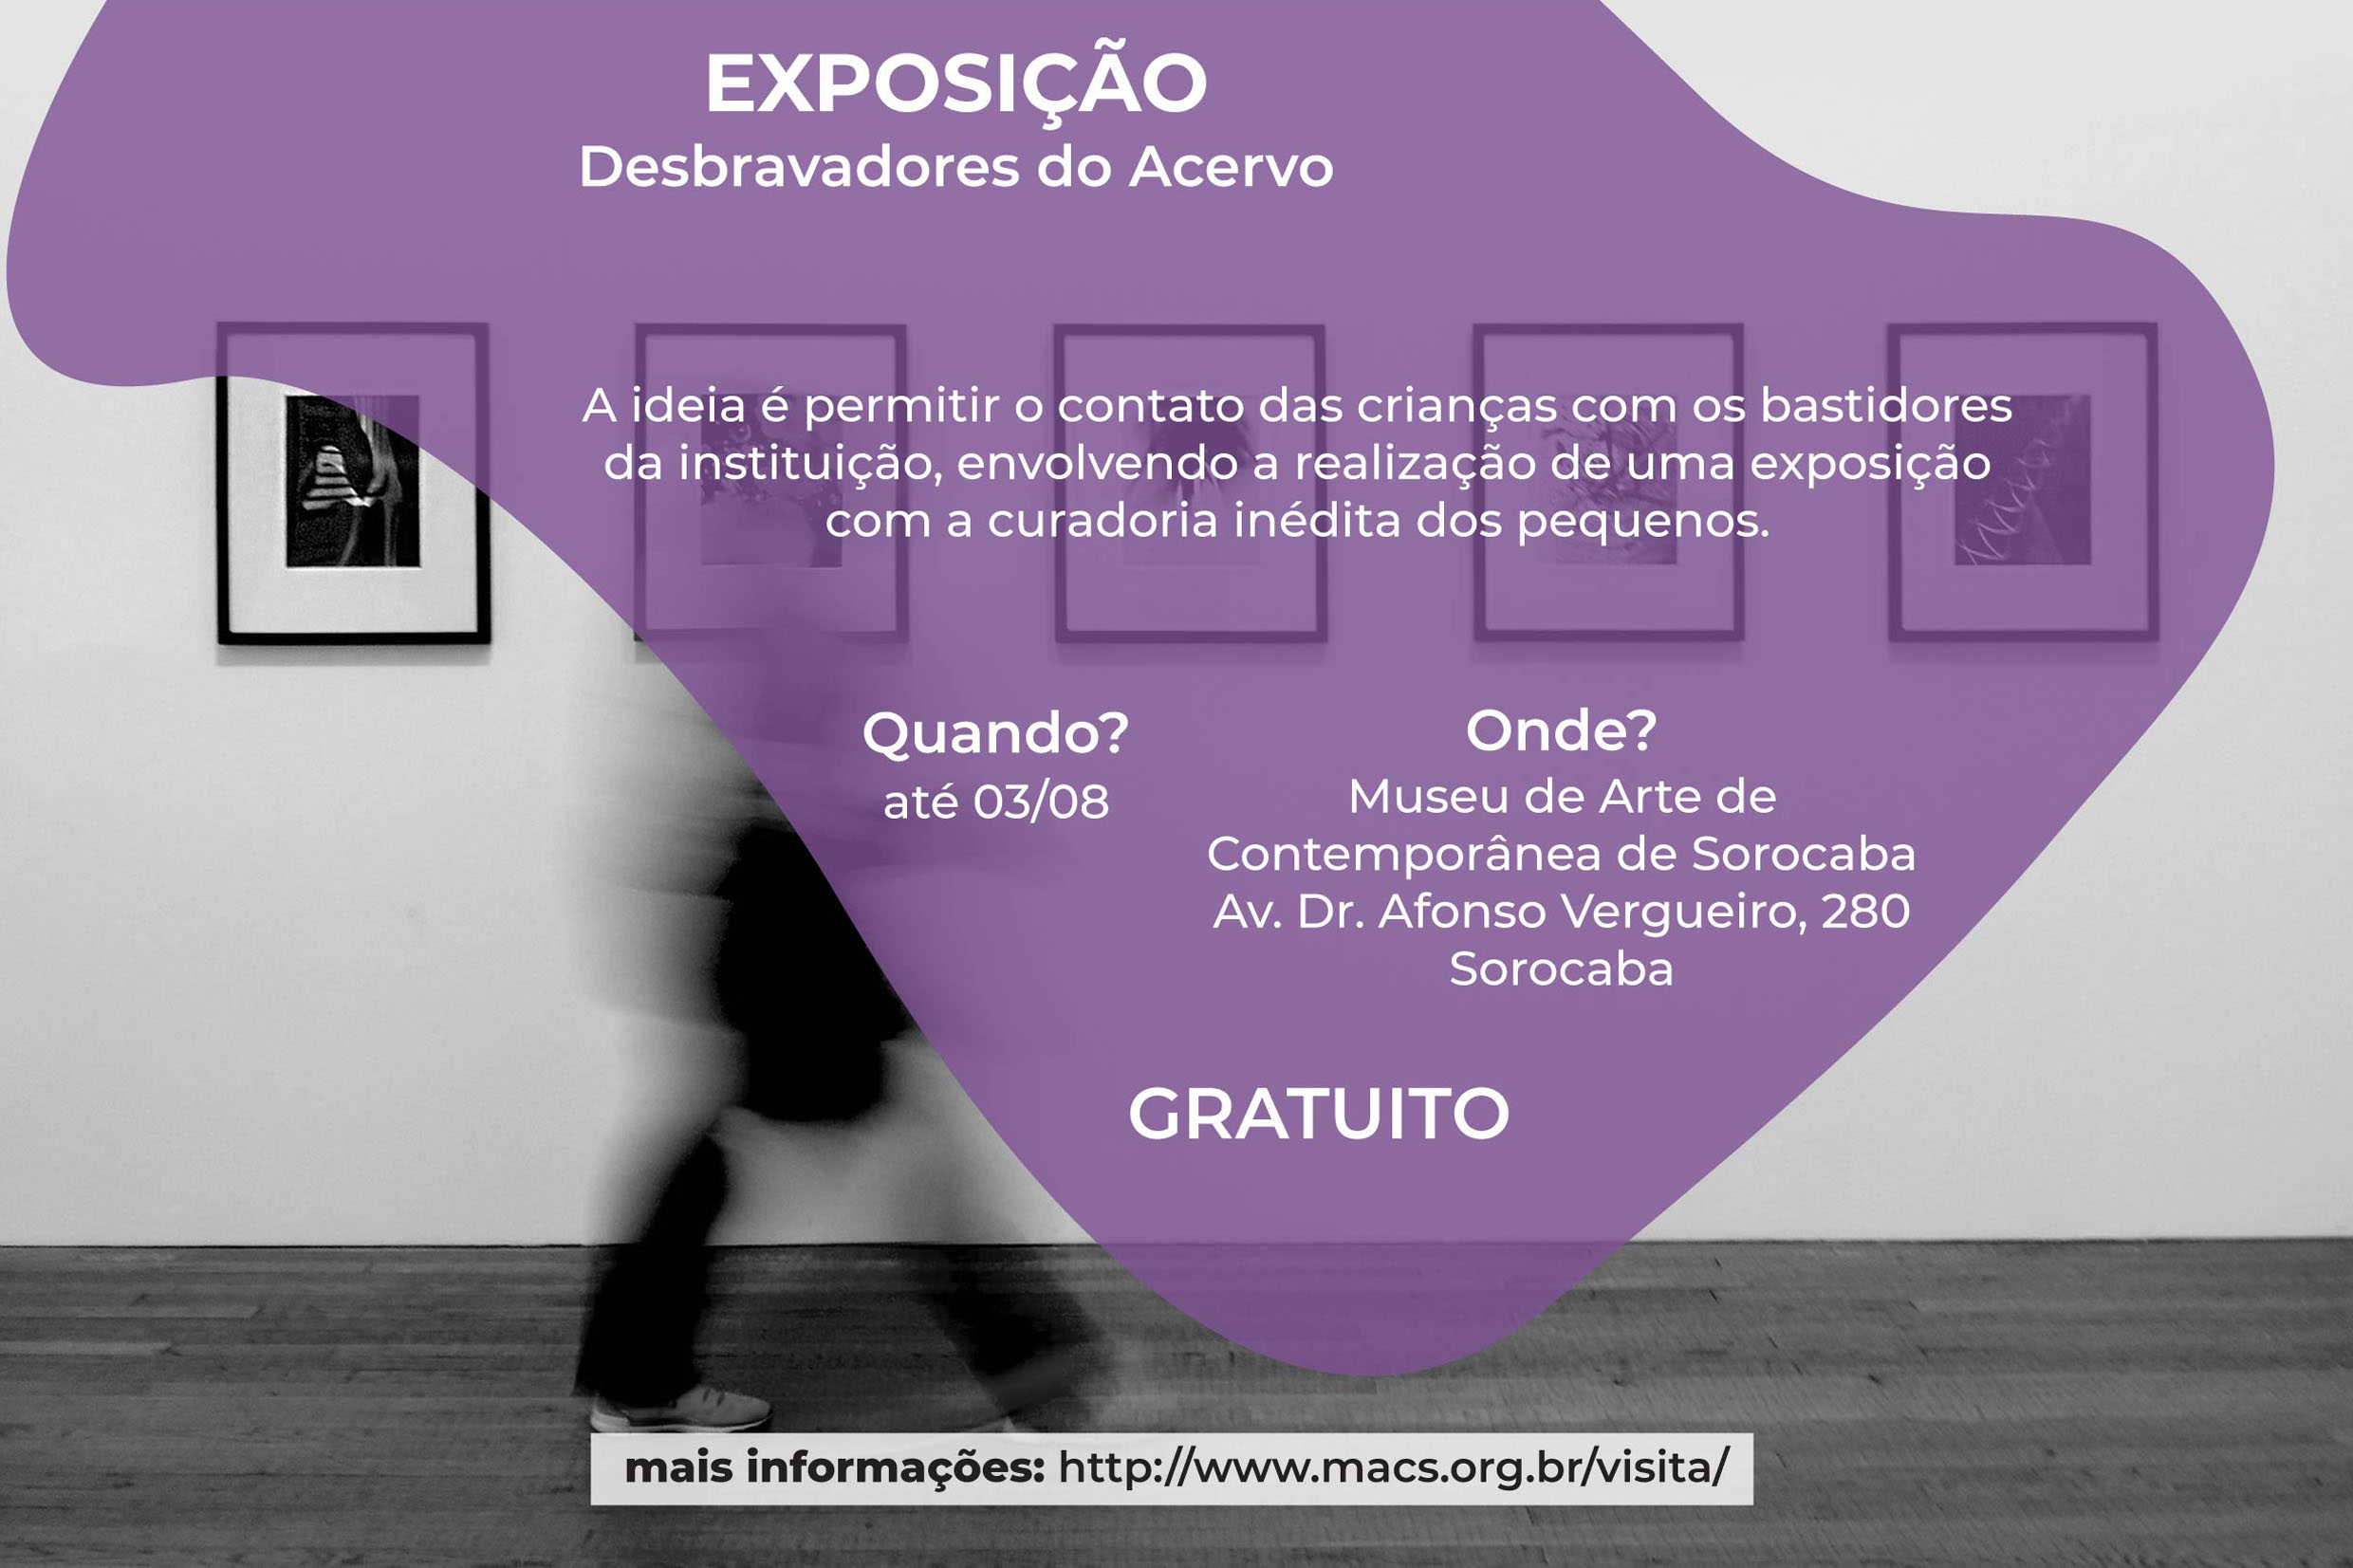 Agência Alesp<a style='float:right' href='https://www3.al.sp.gov.br/repositorio/noticia/N-07-2019/fg236866.jpg' target=_blank><img src='/_img/material-file-download-white.png' width='14px' alt='Clique para baixar a imagem'></a>